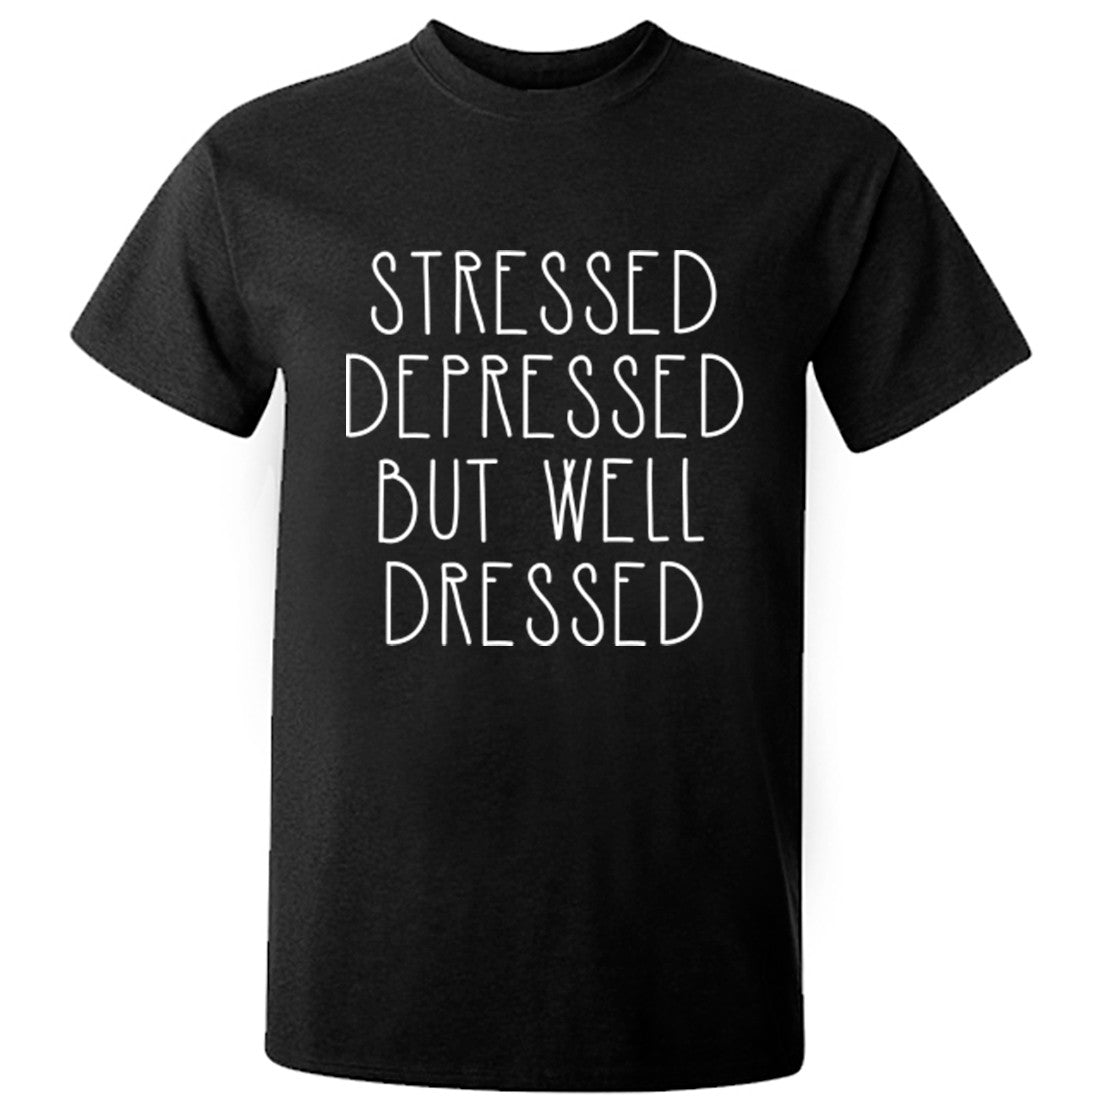 Stressed Depressed But Well Dressed Unisex Fit T-Shirt K0465 - Illustrated Identity Ltd.